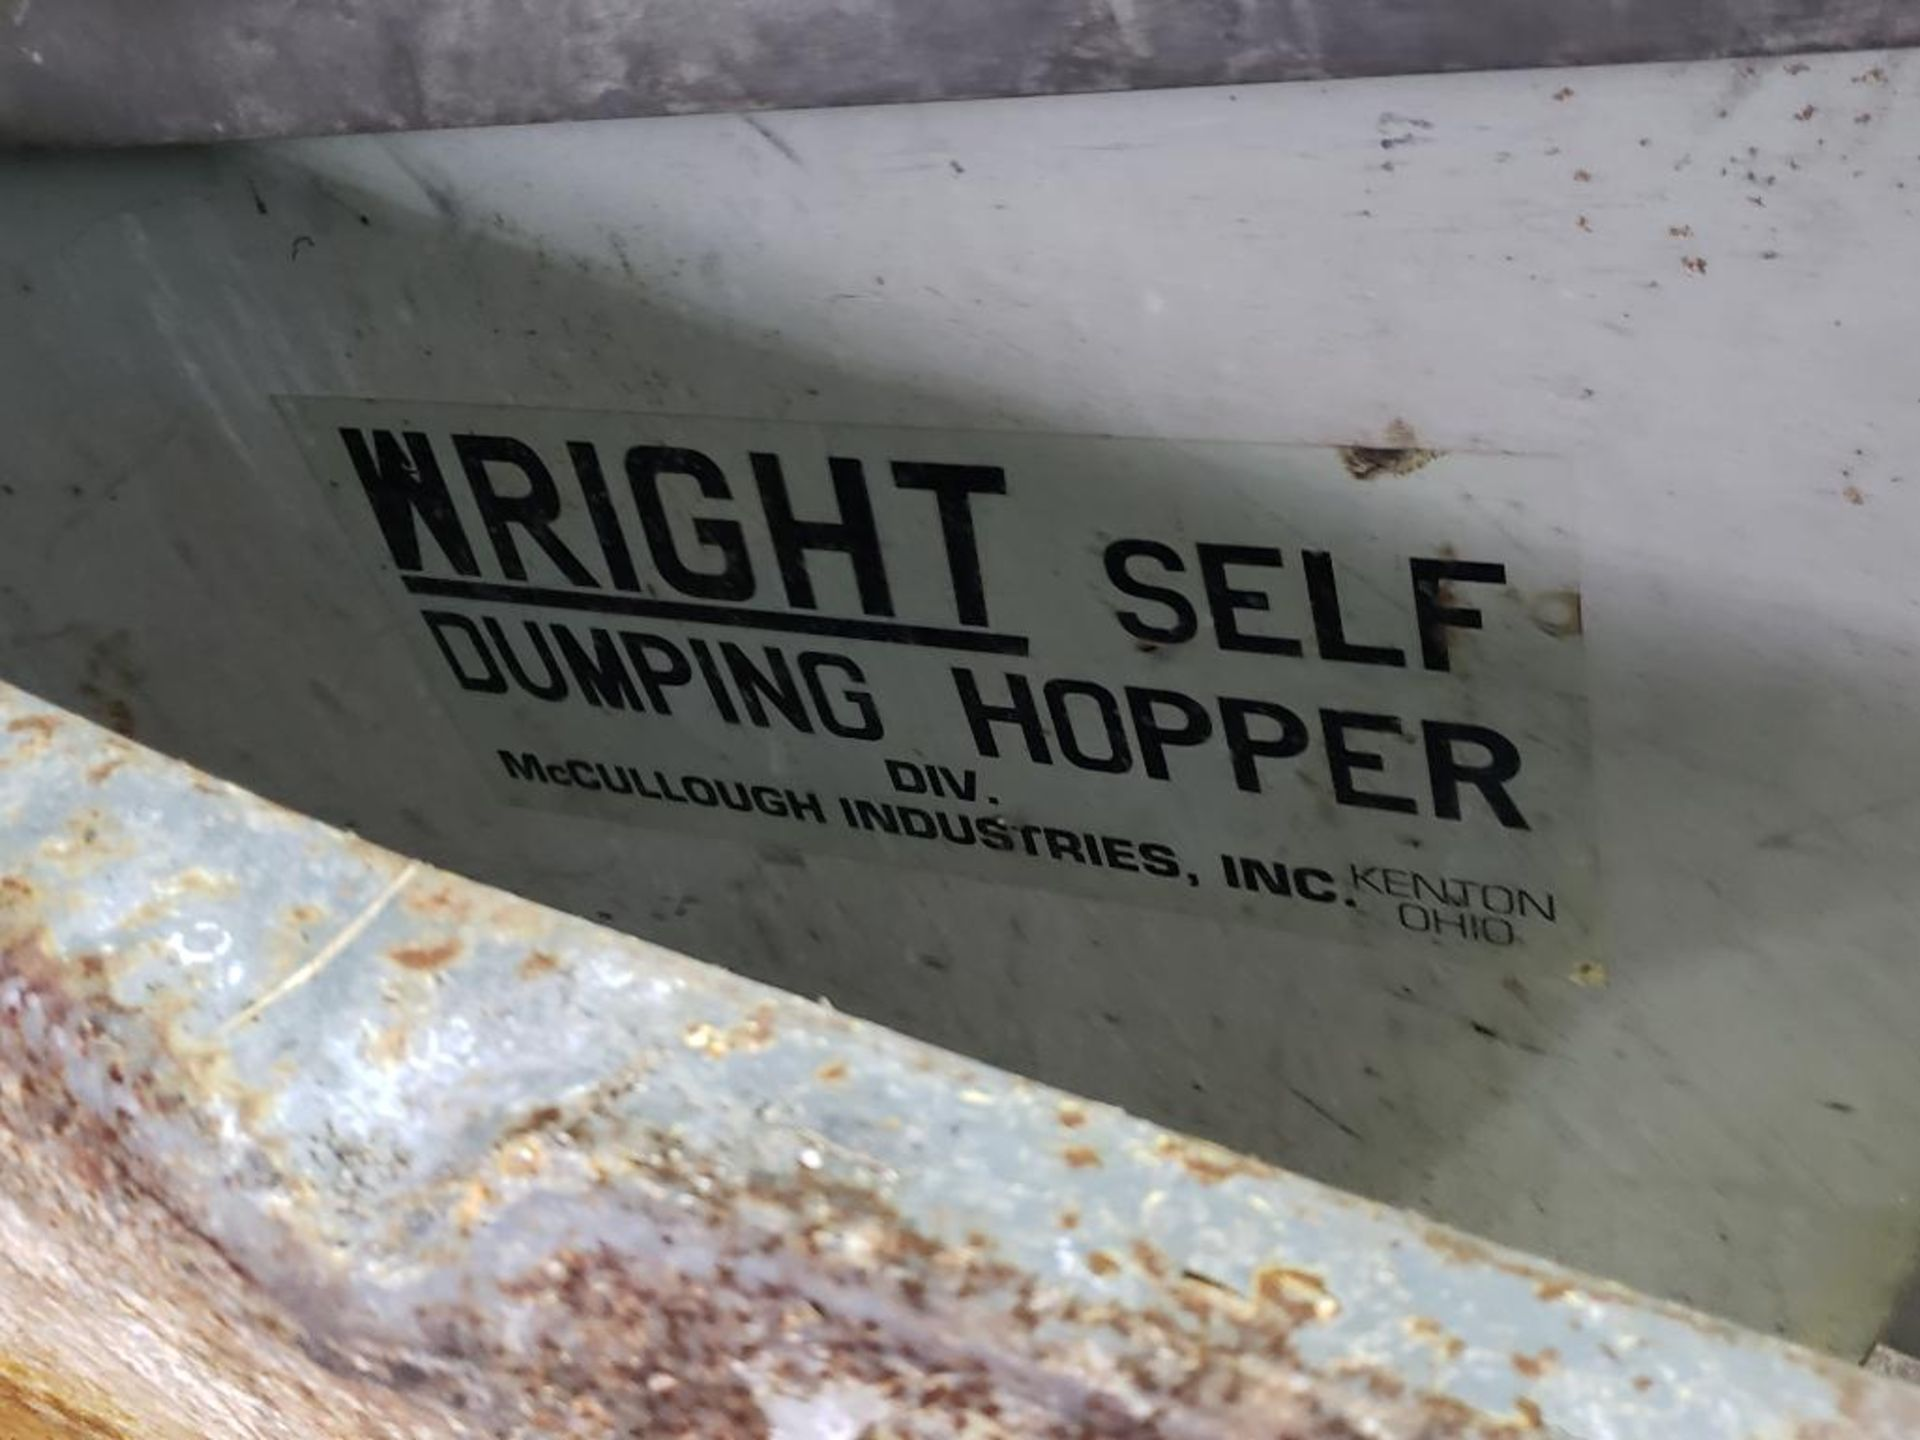 Lot 52 - Self dumping hopper on casters.